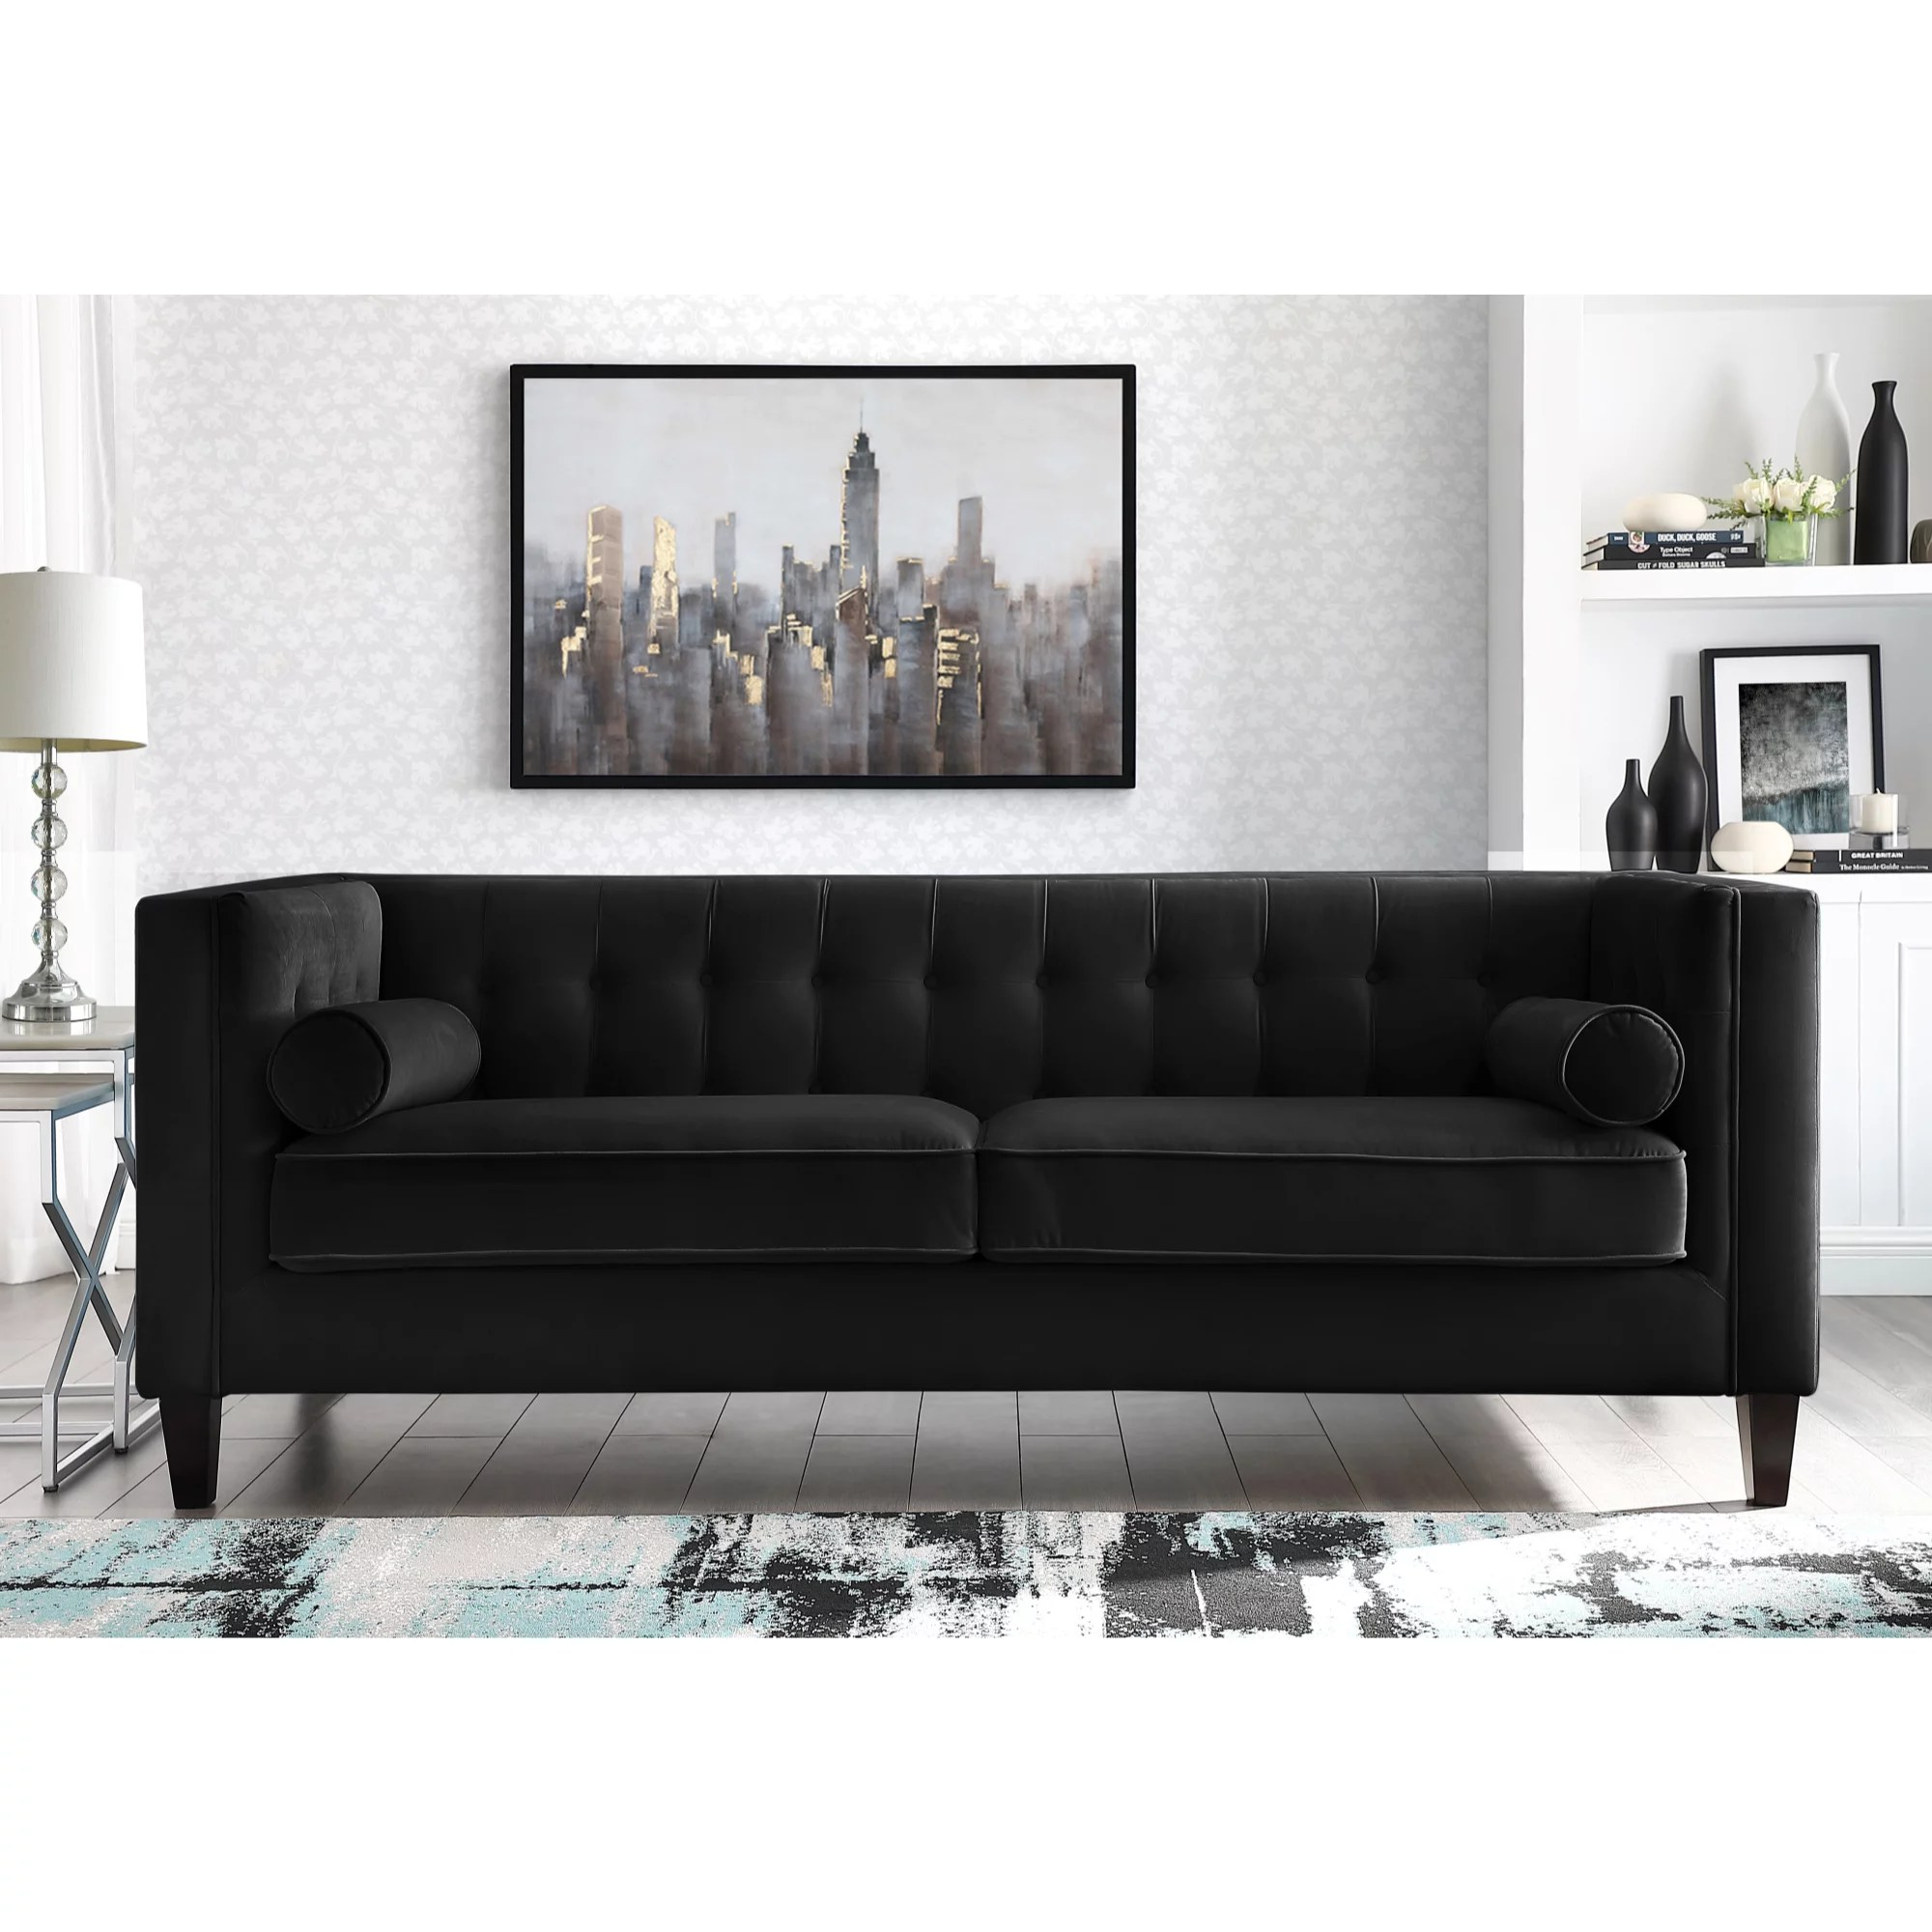 Square Sofa Rin Black Velvet Sofa Button Tufted Square Arms Tapered Legs Modern Contemporary